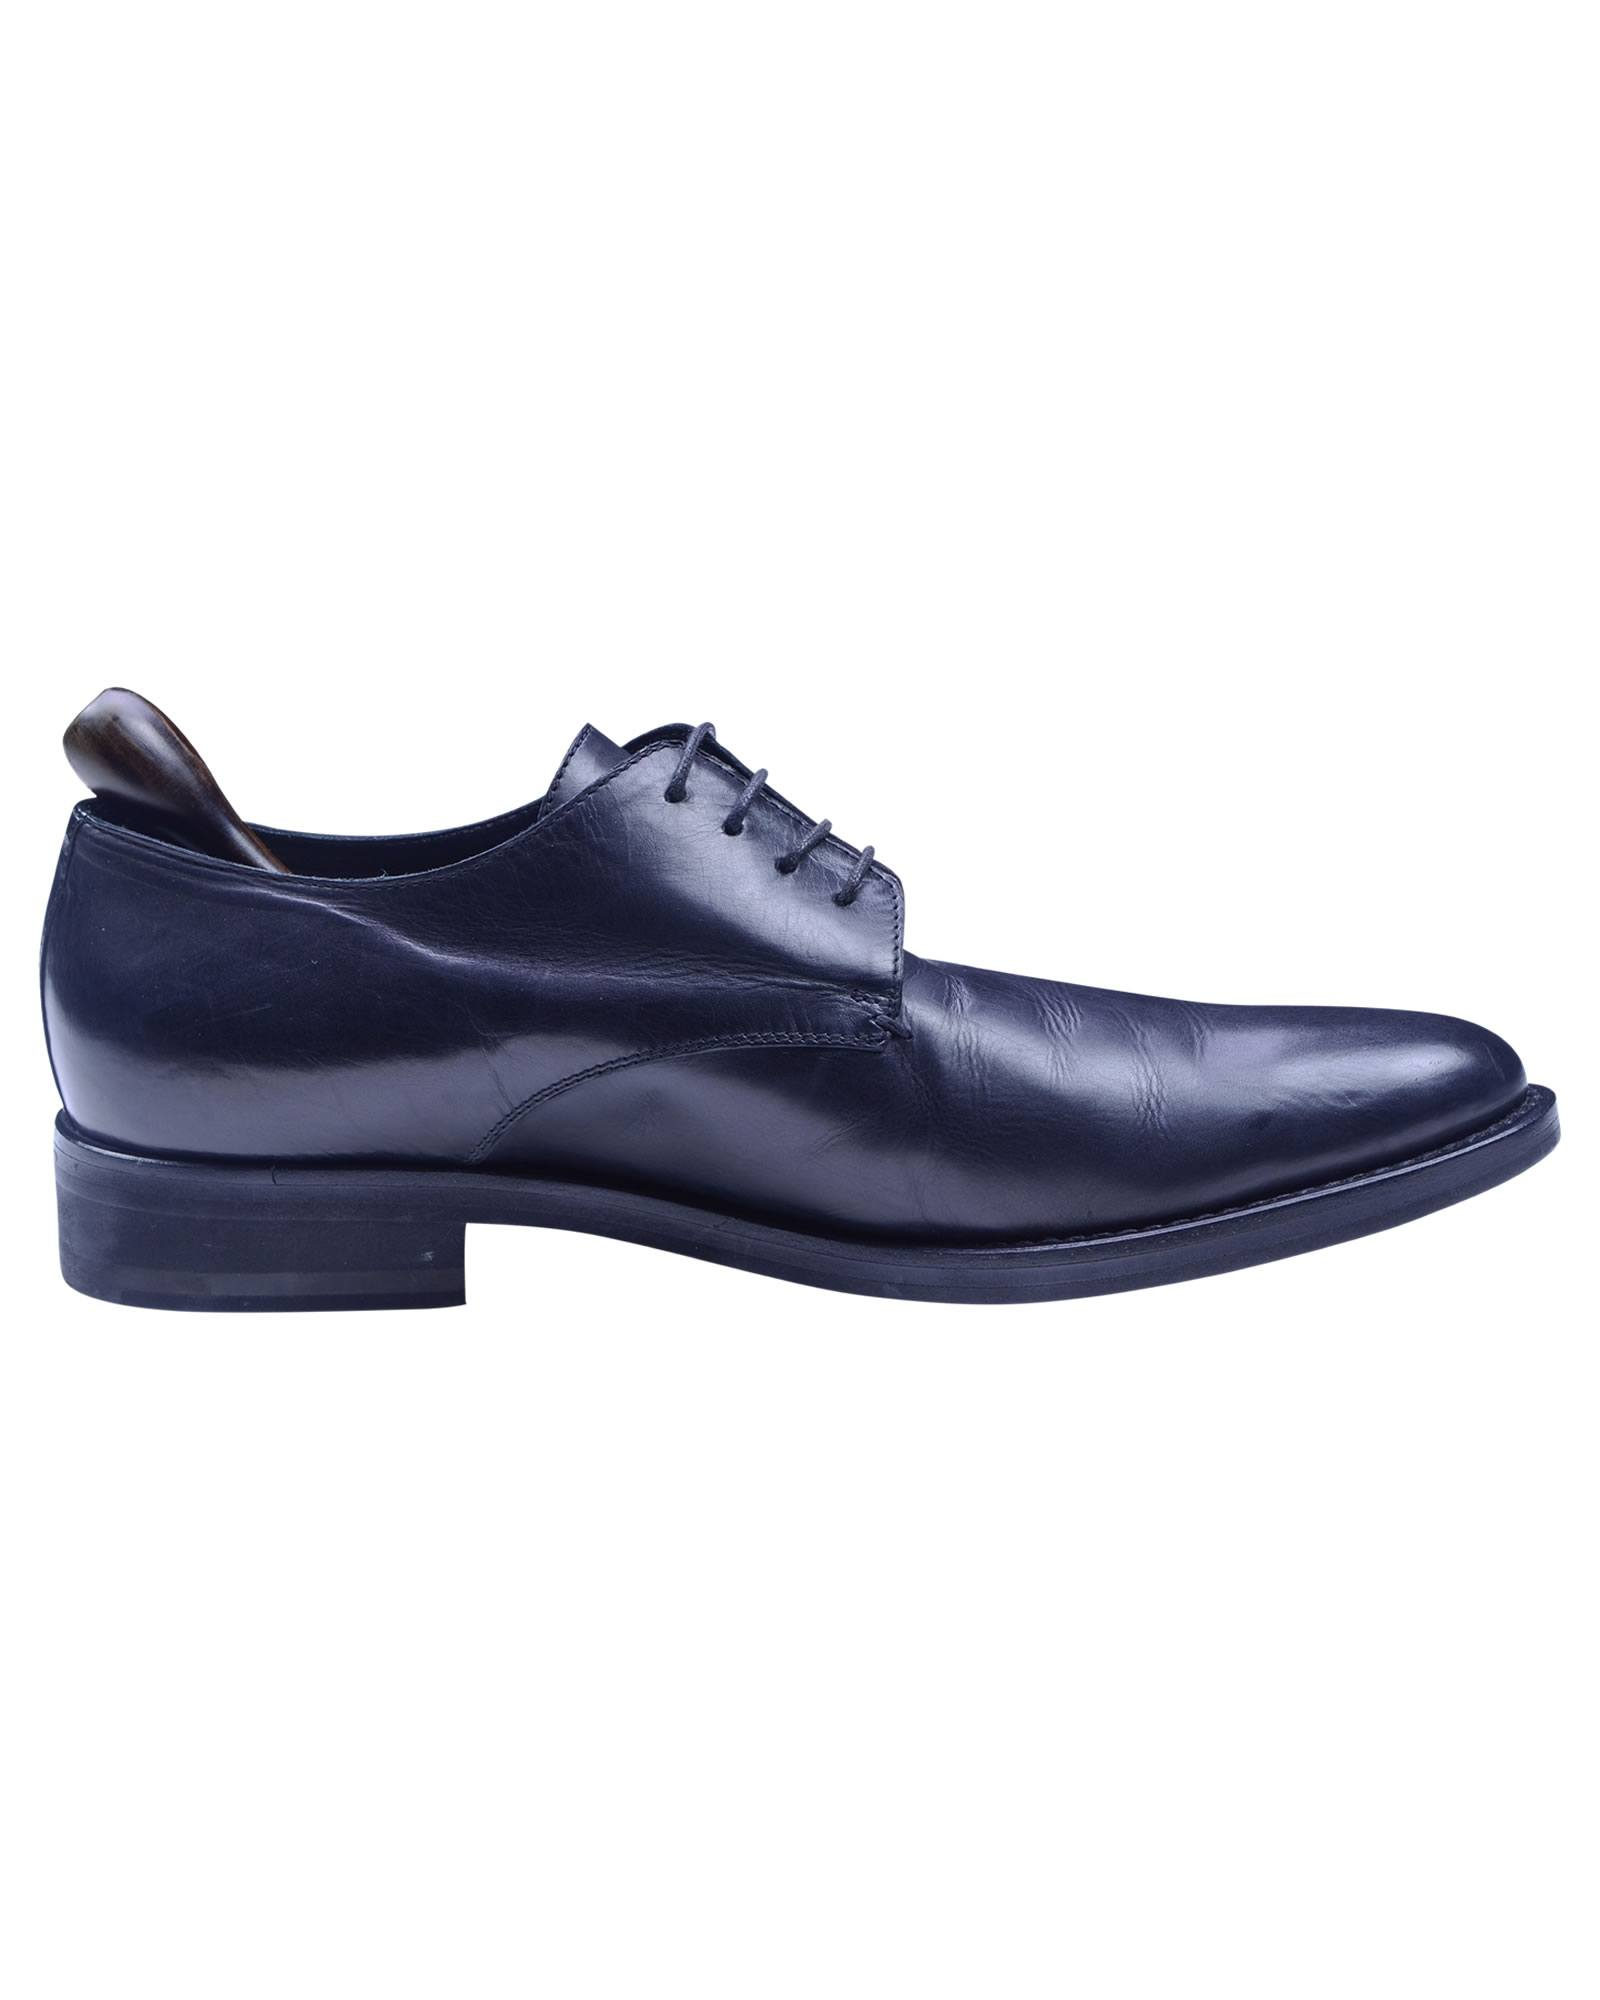 Costume National Black Color Calf Leather Handmade Lace Up Shoe